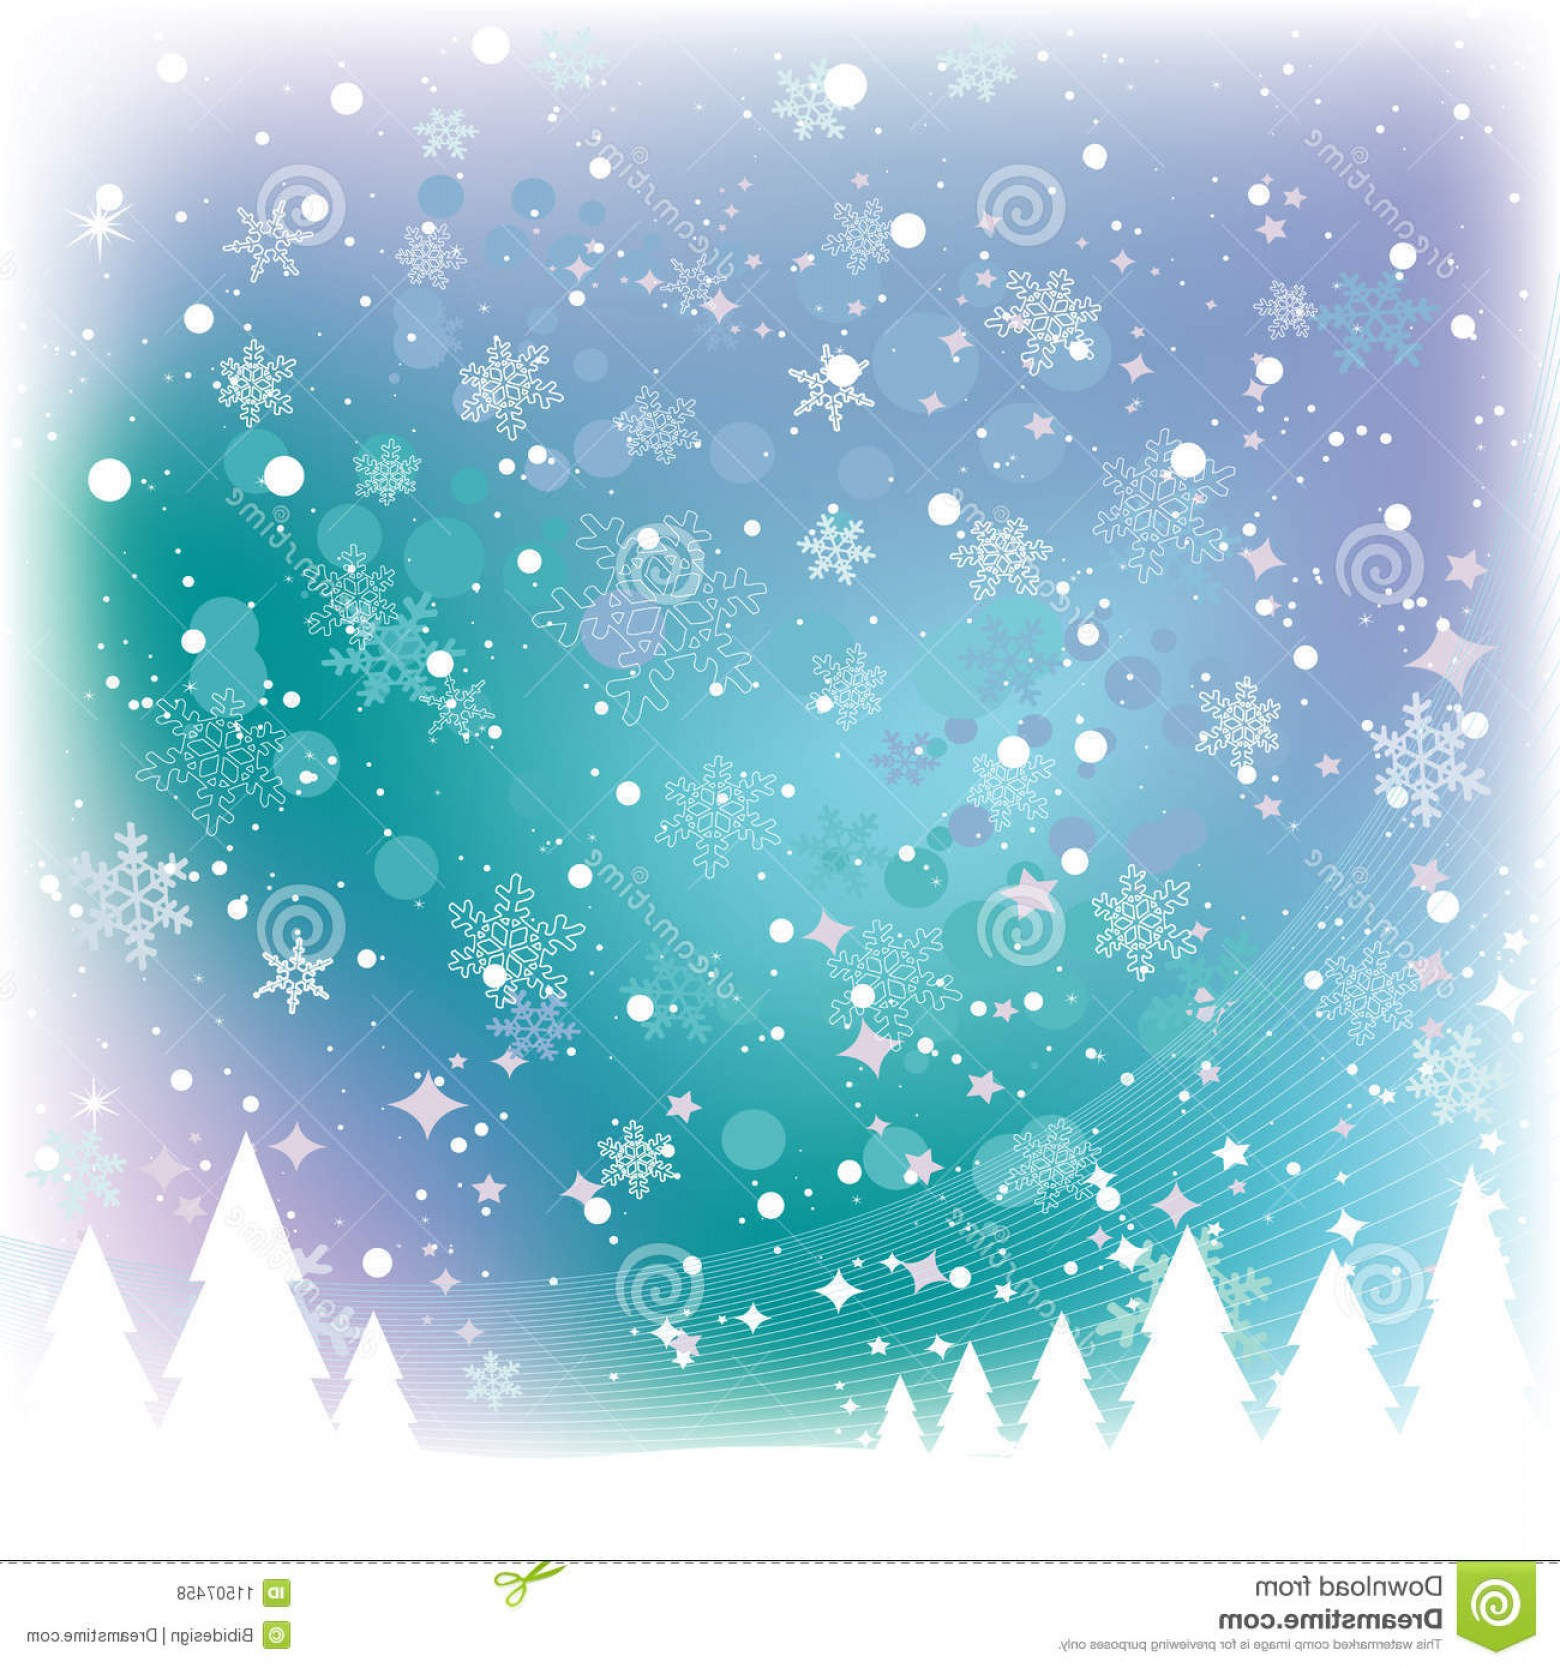 Snow Falling Vector Free: Royalty Free Stock Photos Snow Scene Image